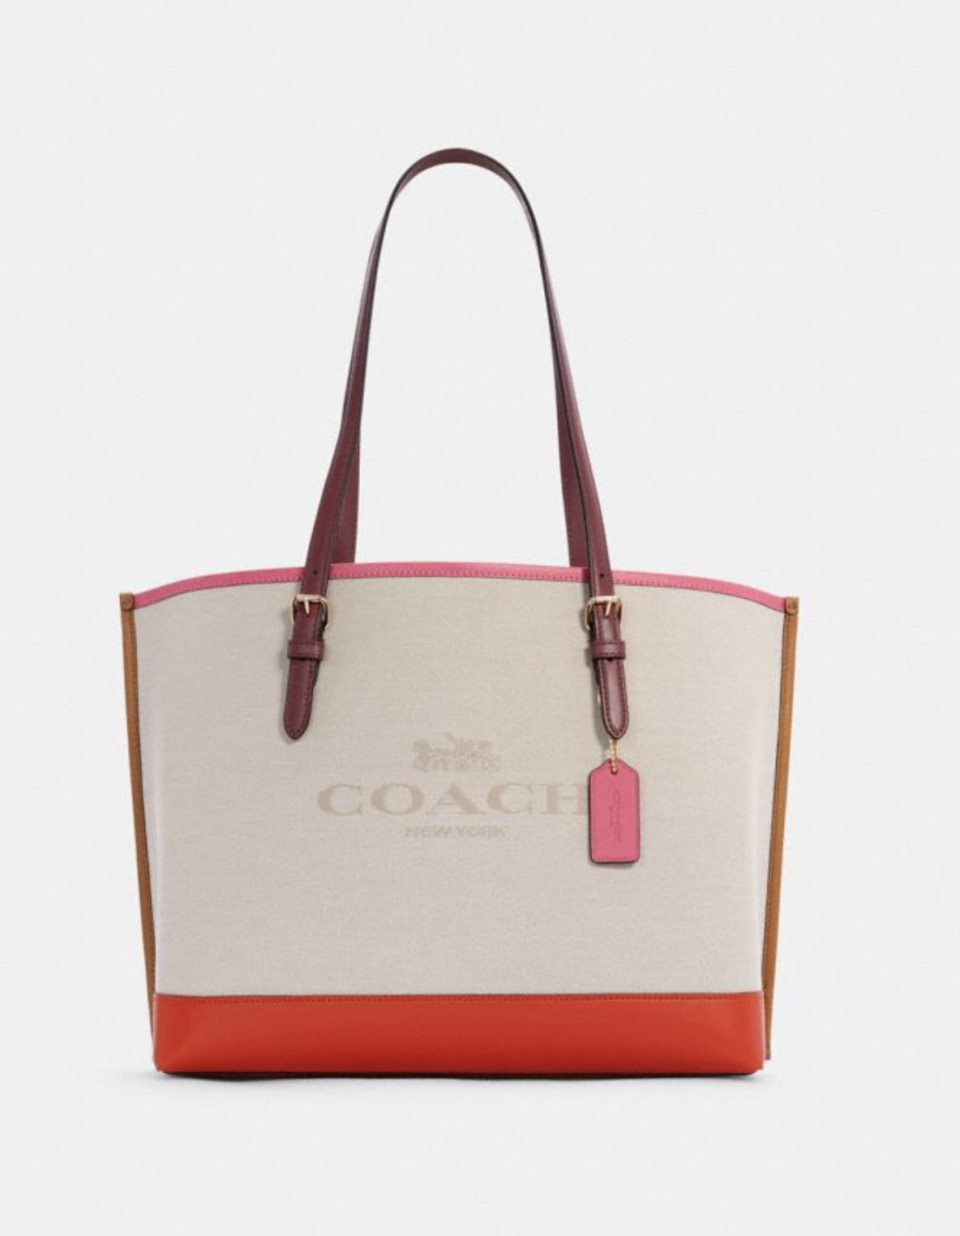 Mollie Tote In Colorblock in Natural/Mango (Photo via Coach Outlet)